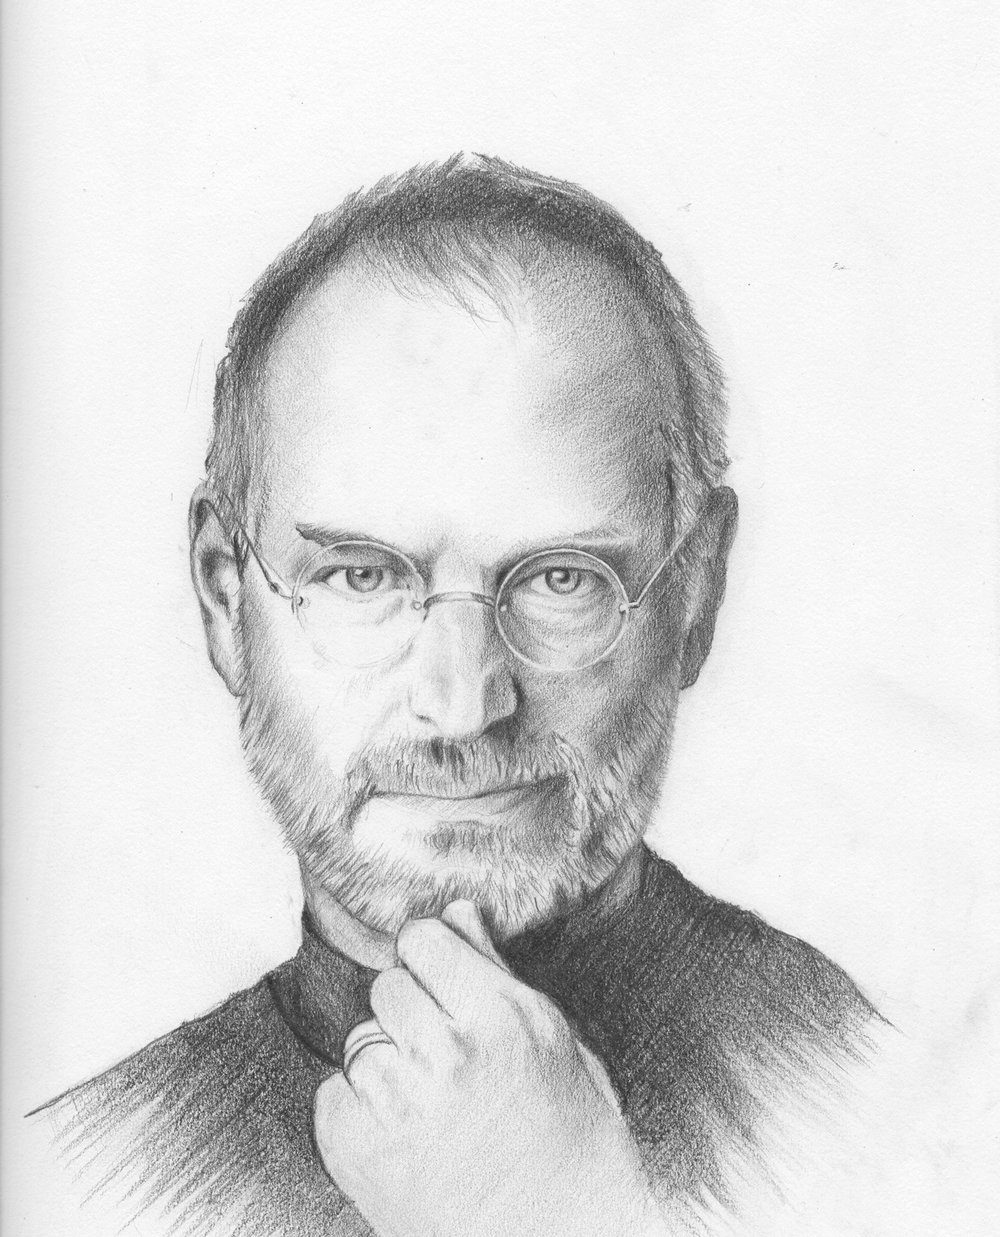 Steve jobs 2012 graphite pencil portrait drawing